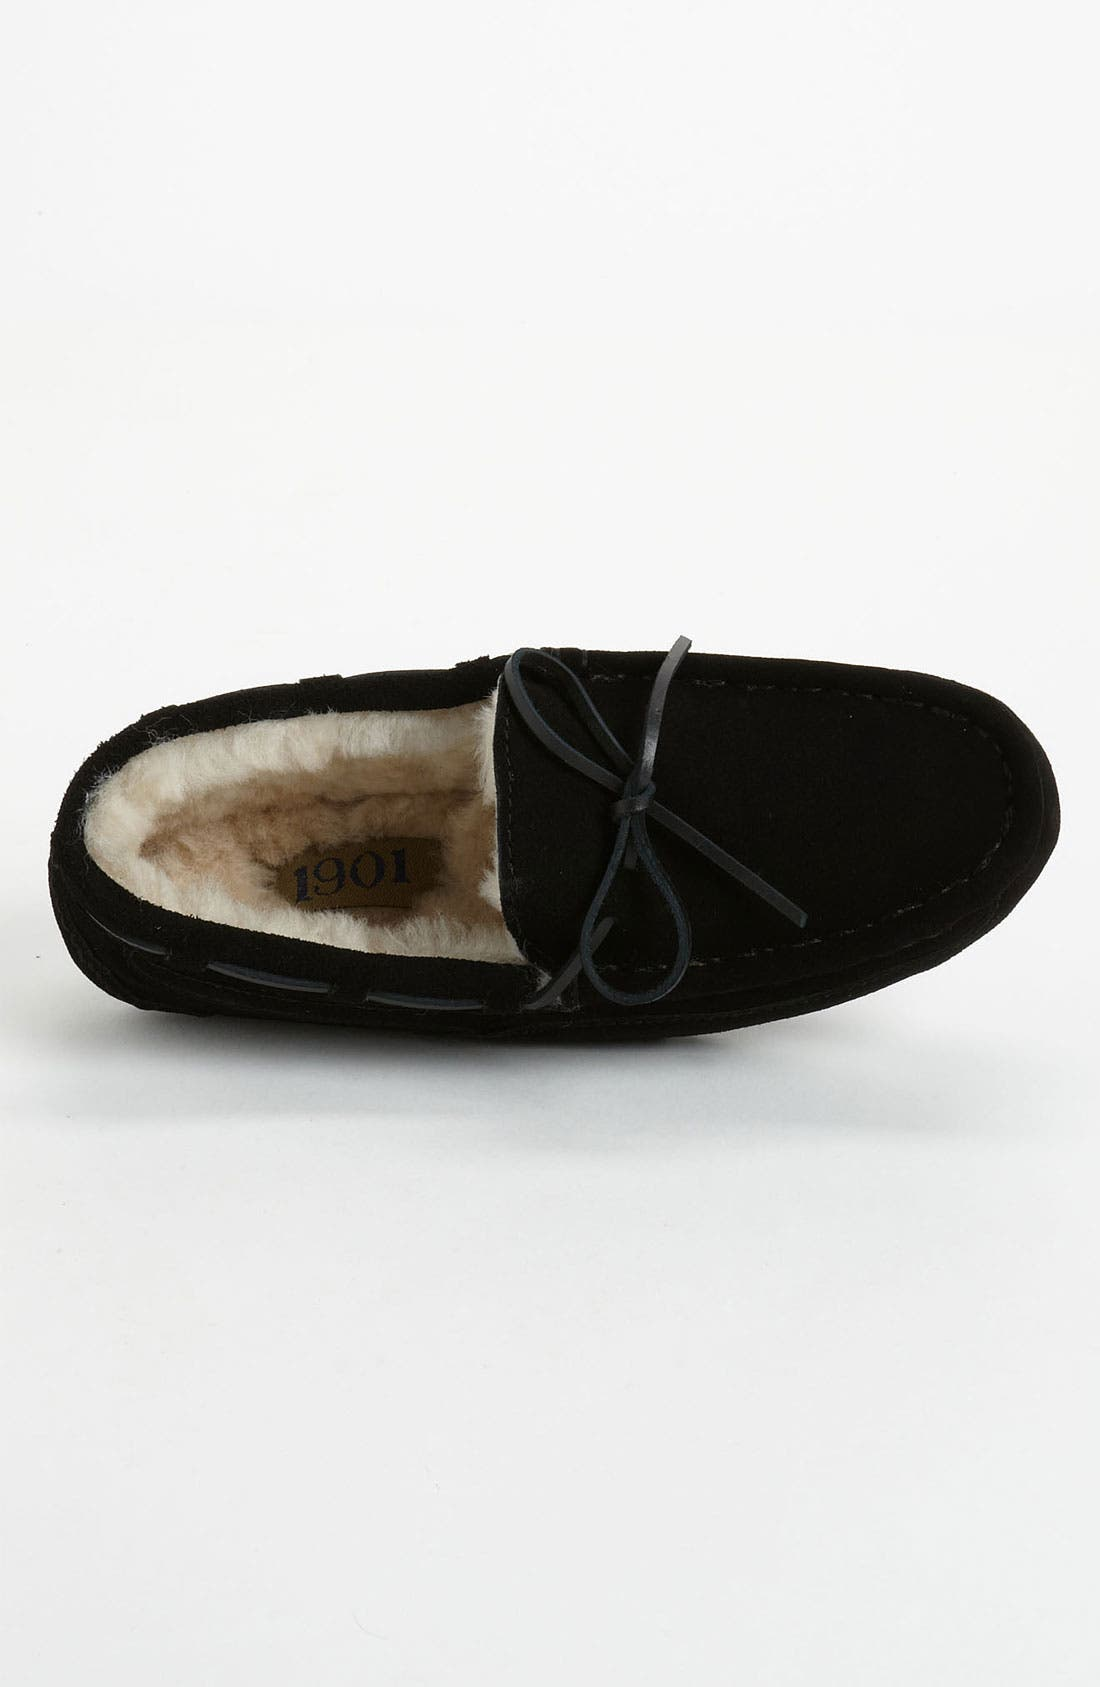 Alternate Image 3  - 1901 'Peak' Slipper